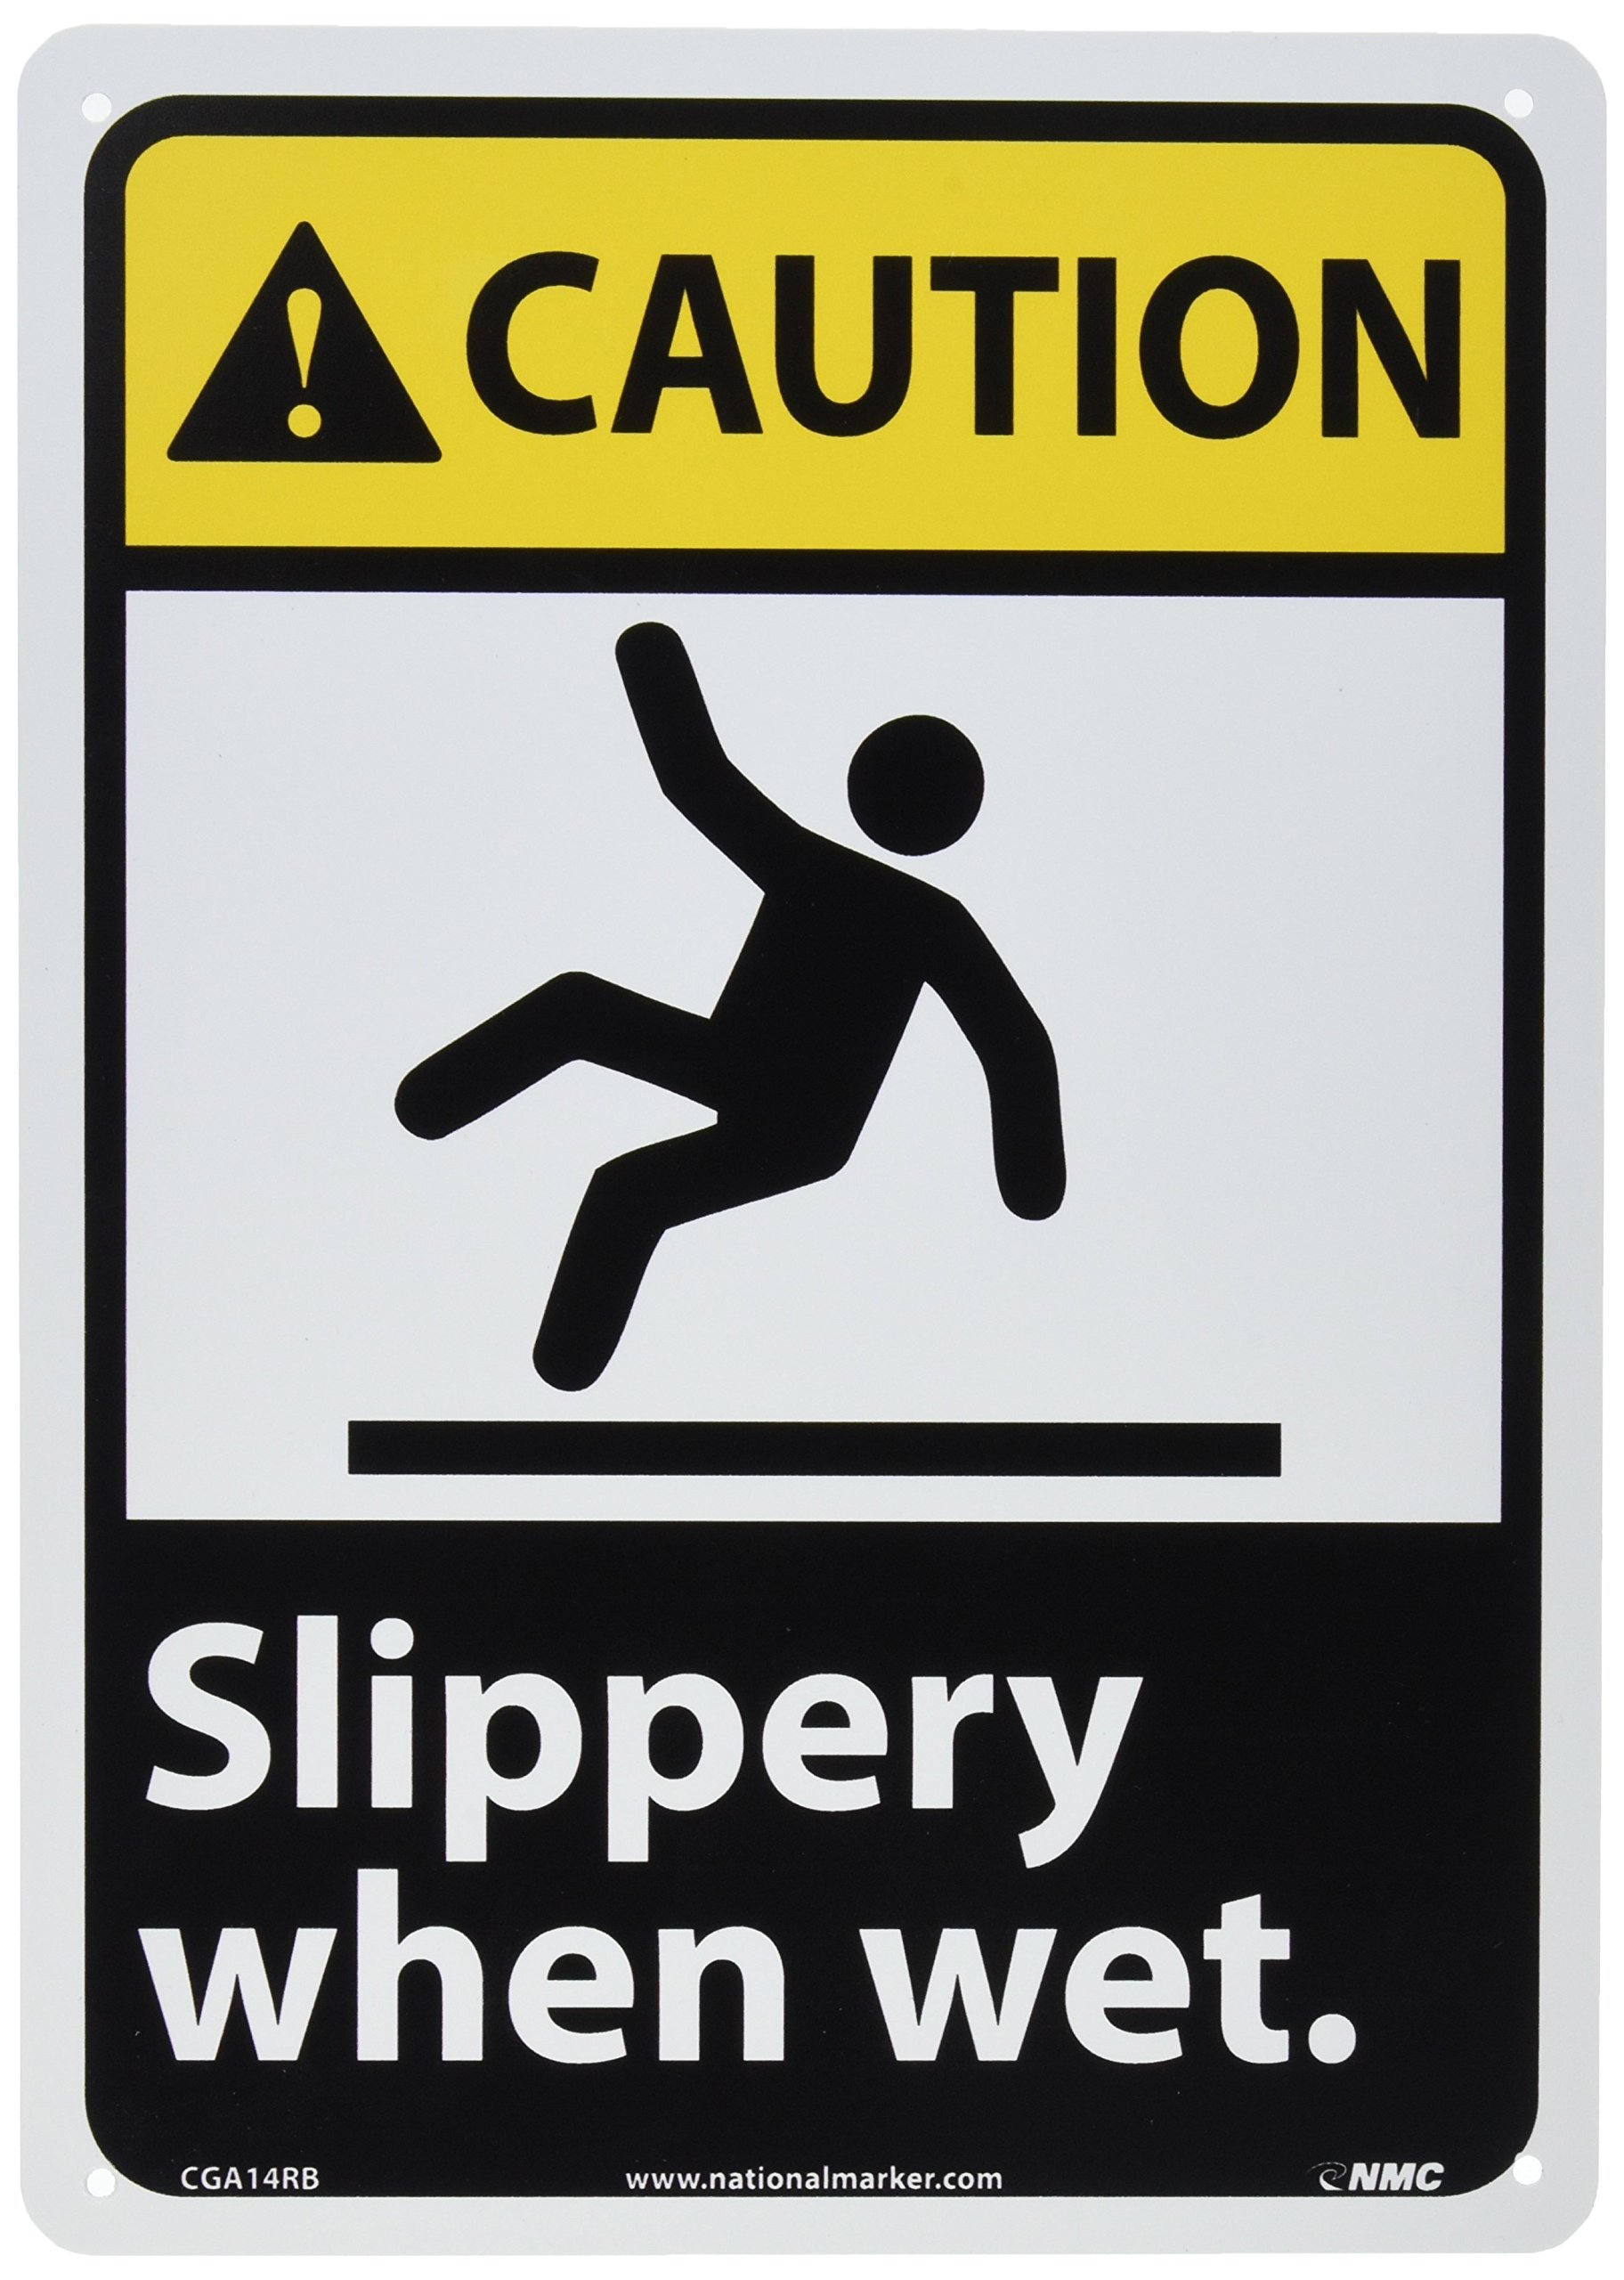 NMC CGA14RB Caution - Slippery when wet. – 10 in. x 14 in. Rigid Plastic Caution Signage with Graphic, Black/White Text on Yellow/Black Base